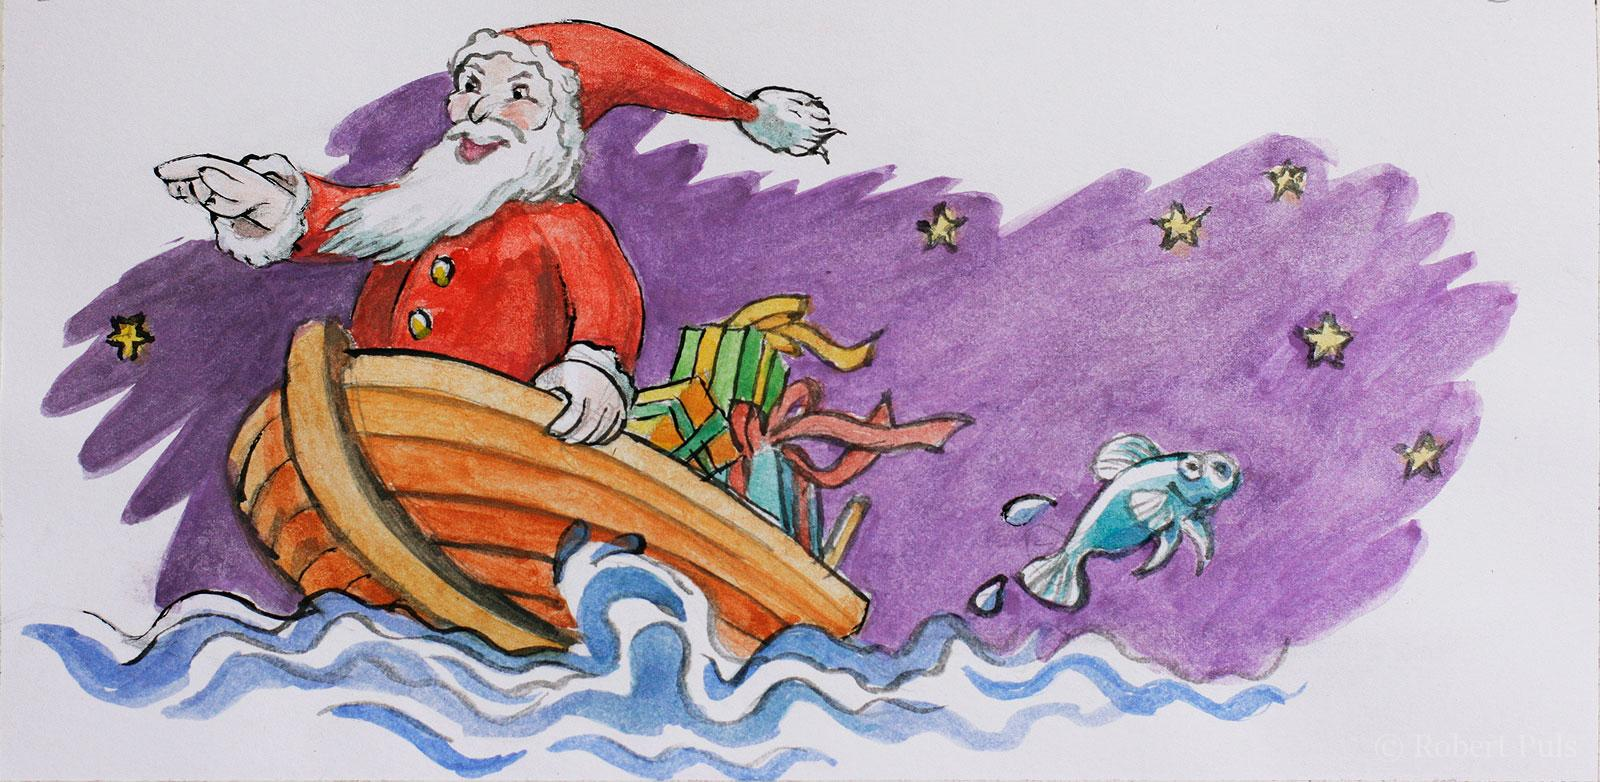 Weihnachtsmann Boot maritim Illustration